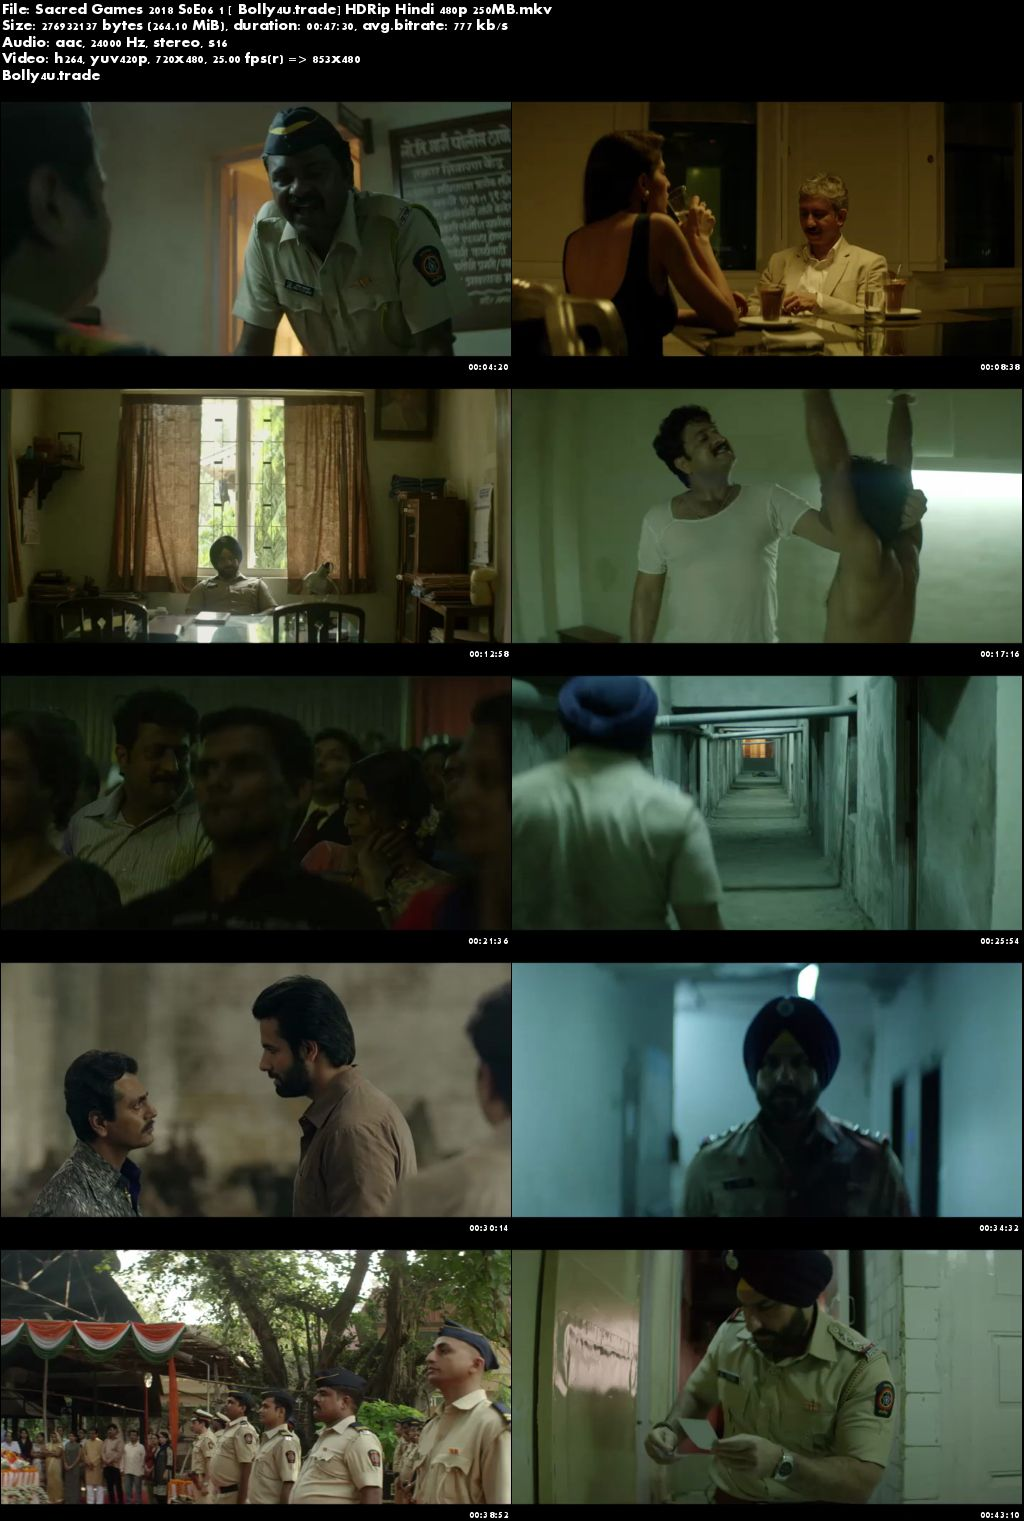 Sacred Games 2018 S01E06 HDRip 250MB Hindi 480p Download